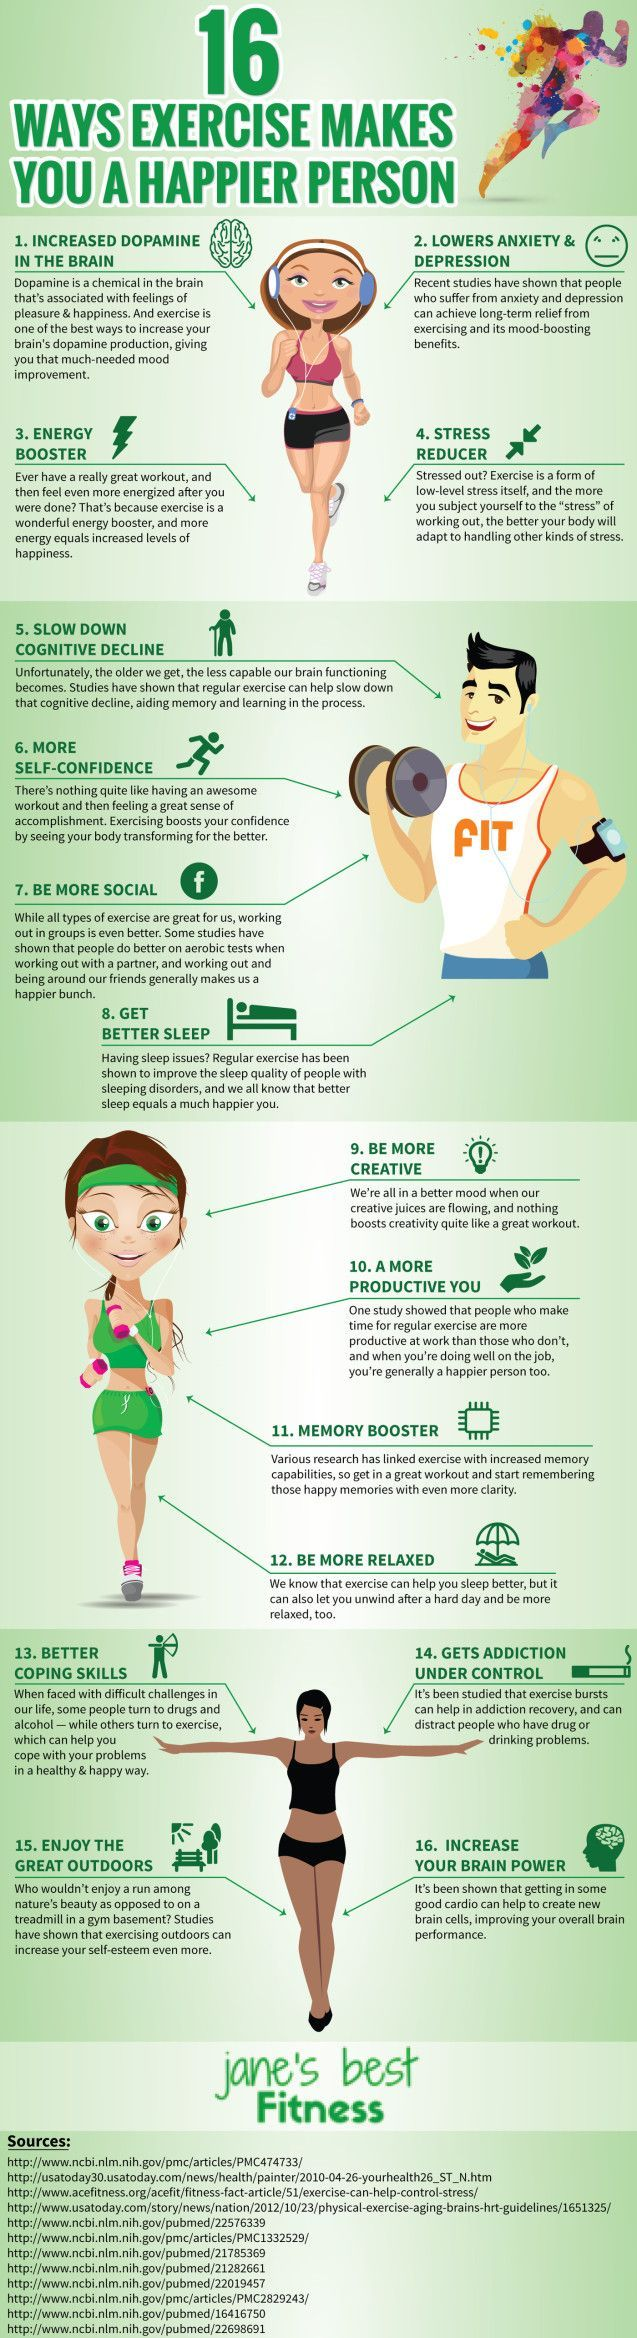 See more here ► https://www.youtube.com/watch?v=3qKhPjyBqW0 Tags: losing weight tip, home tips for weight loss, ten tips to lose weight - 16 Ways Exercise Makes You Happier (Infographic) - mindbodygreen.com